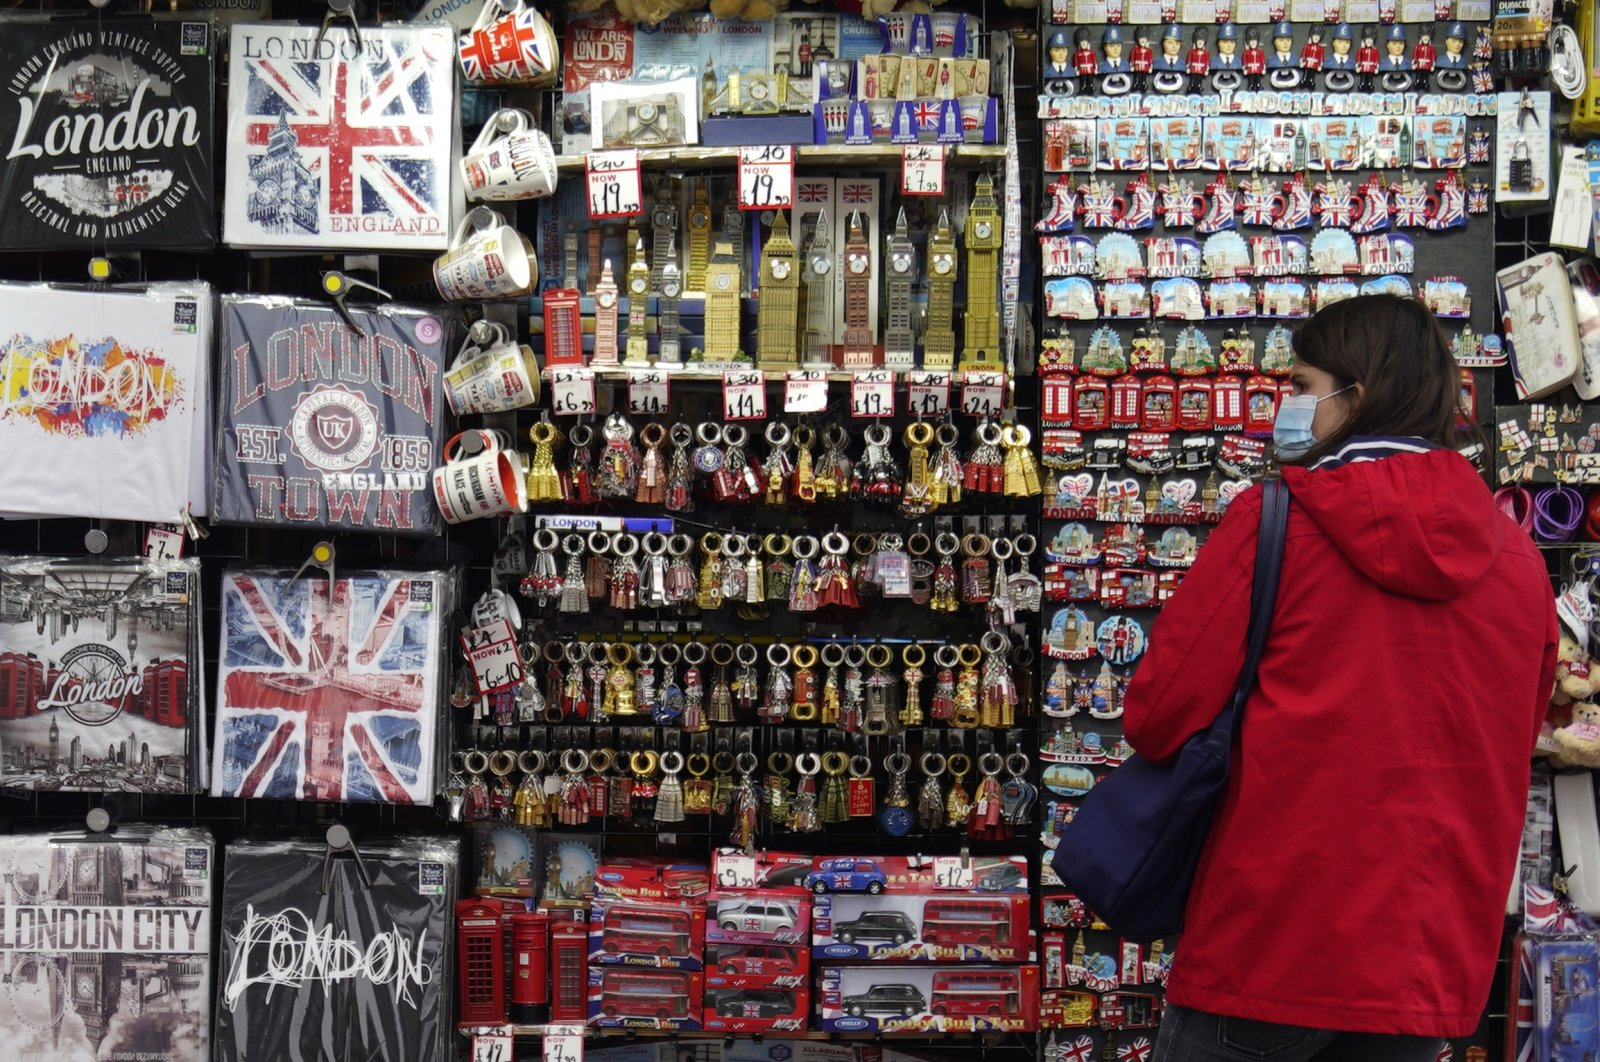 A tourist looks at souvenirs on sale in Central London, Britain, 27 August 2020. It has been reported that the UK tourism industry could lose 22 billion pounds following a drop in visitors after the COVID-19 pandemic. (EPA-EFE Photo)